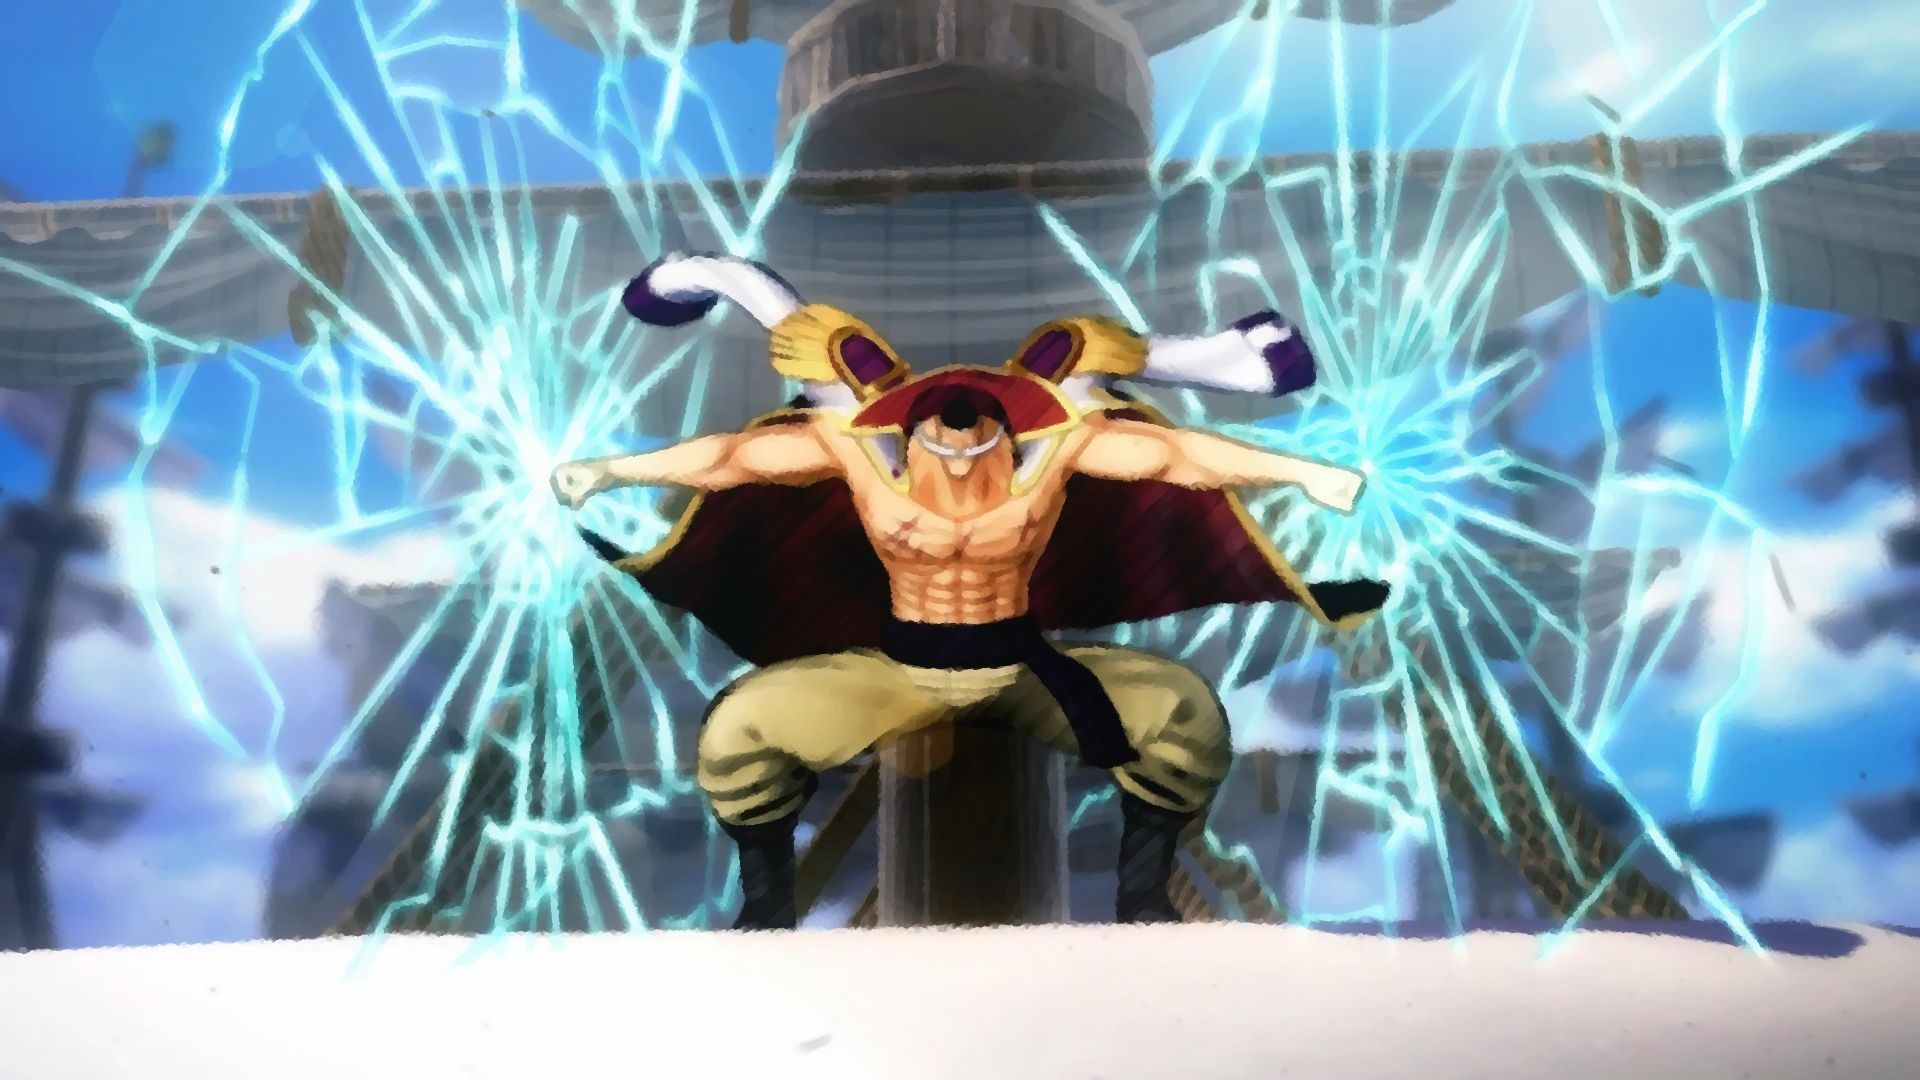 One Piece Episode 963 Release Date, Trailer, Spoilers, Plot Synopsis and Watch Anime Online